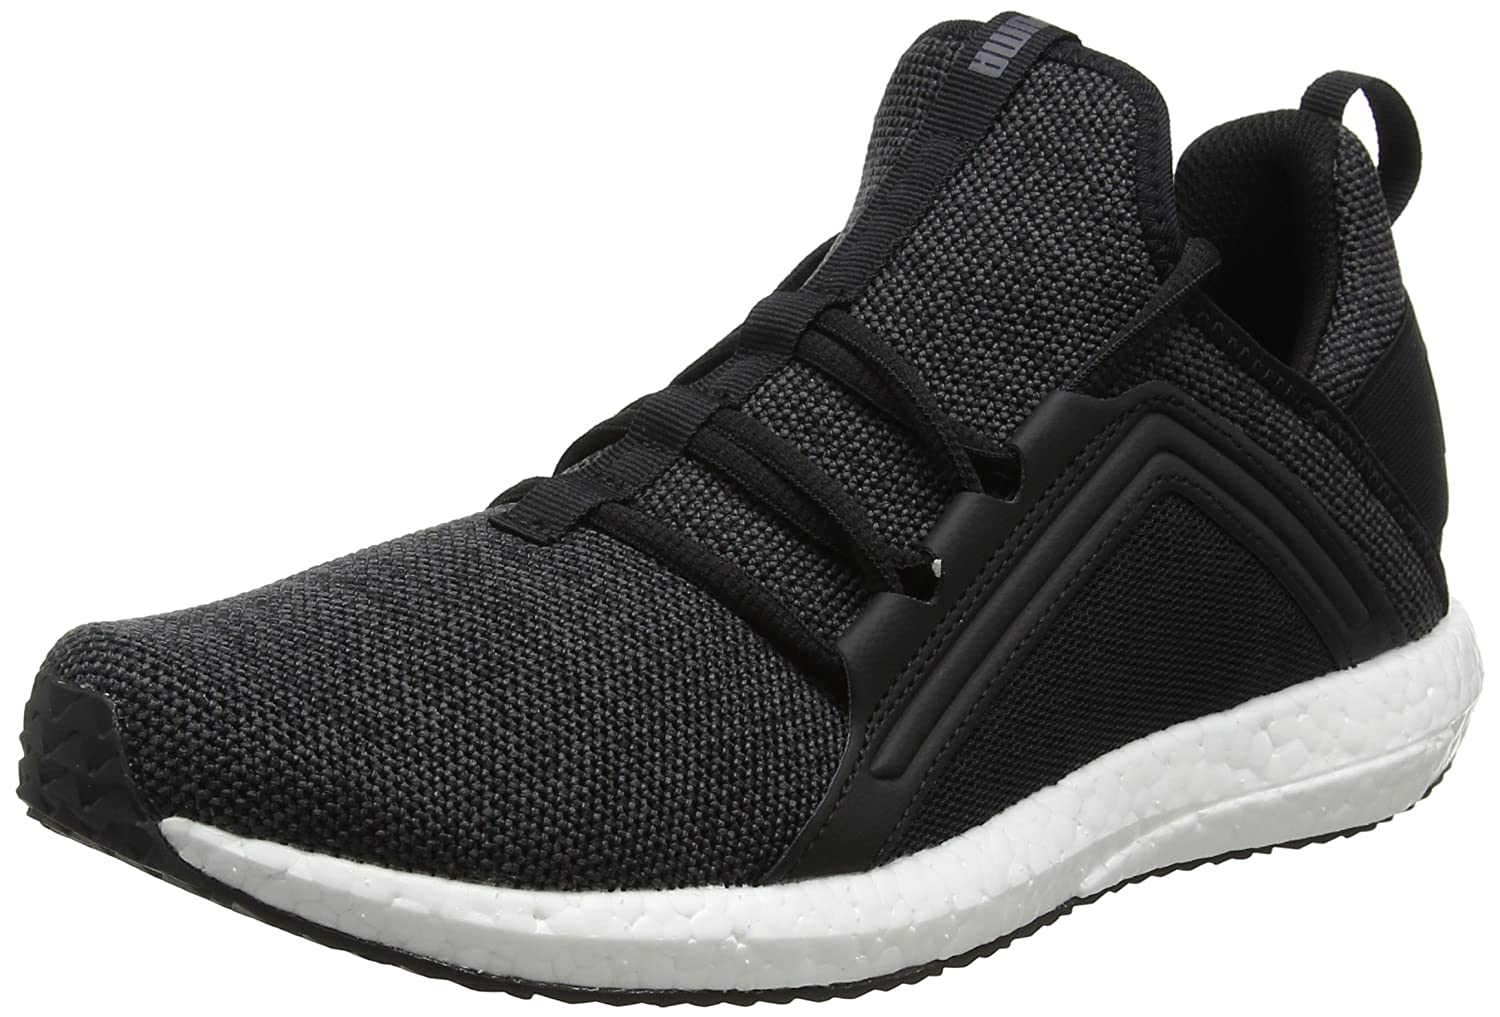 d0cb90780f87 Puma Men s Mega Nrgy Knit Running Shoes  Buy Online at Low Prices in India  - Amazon.in